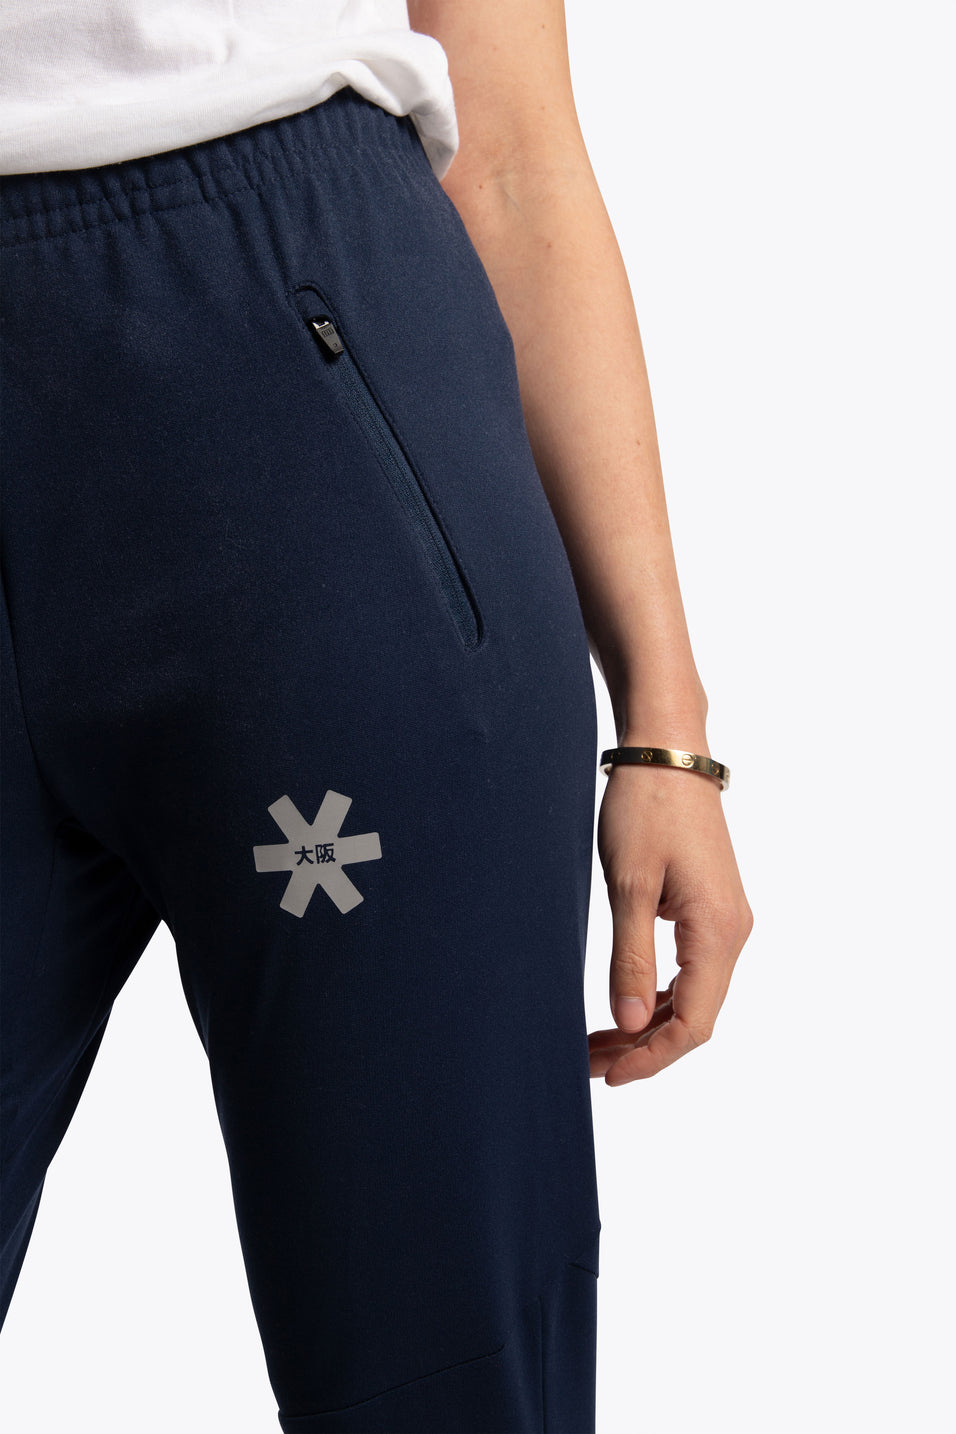 Osaka hockey sweatpants navy